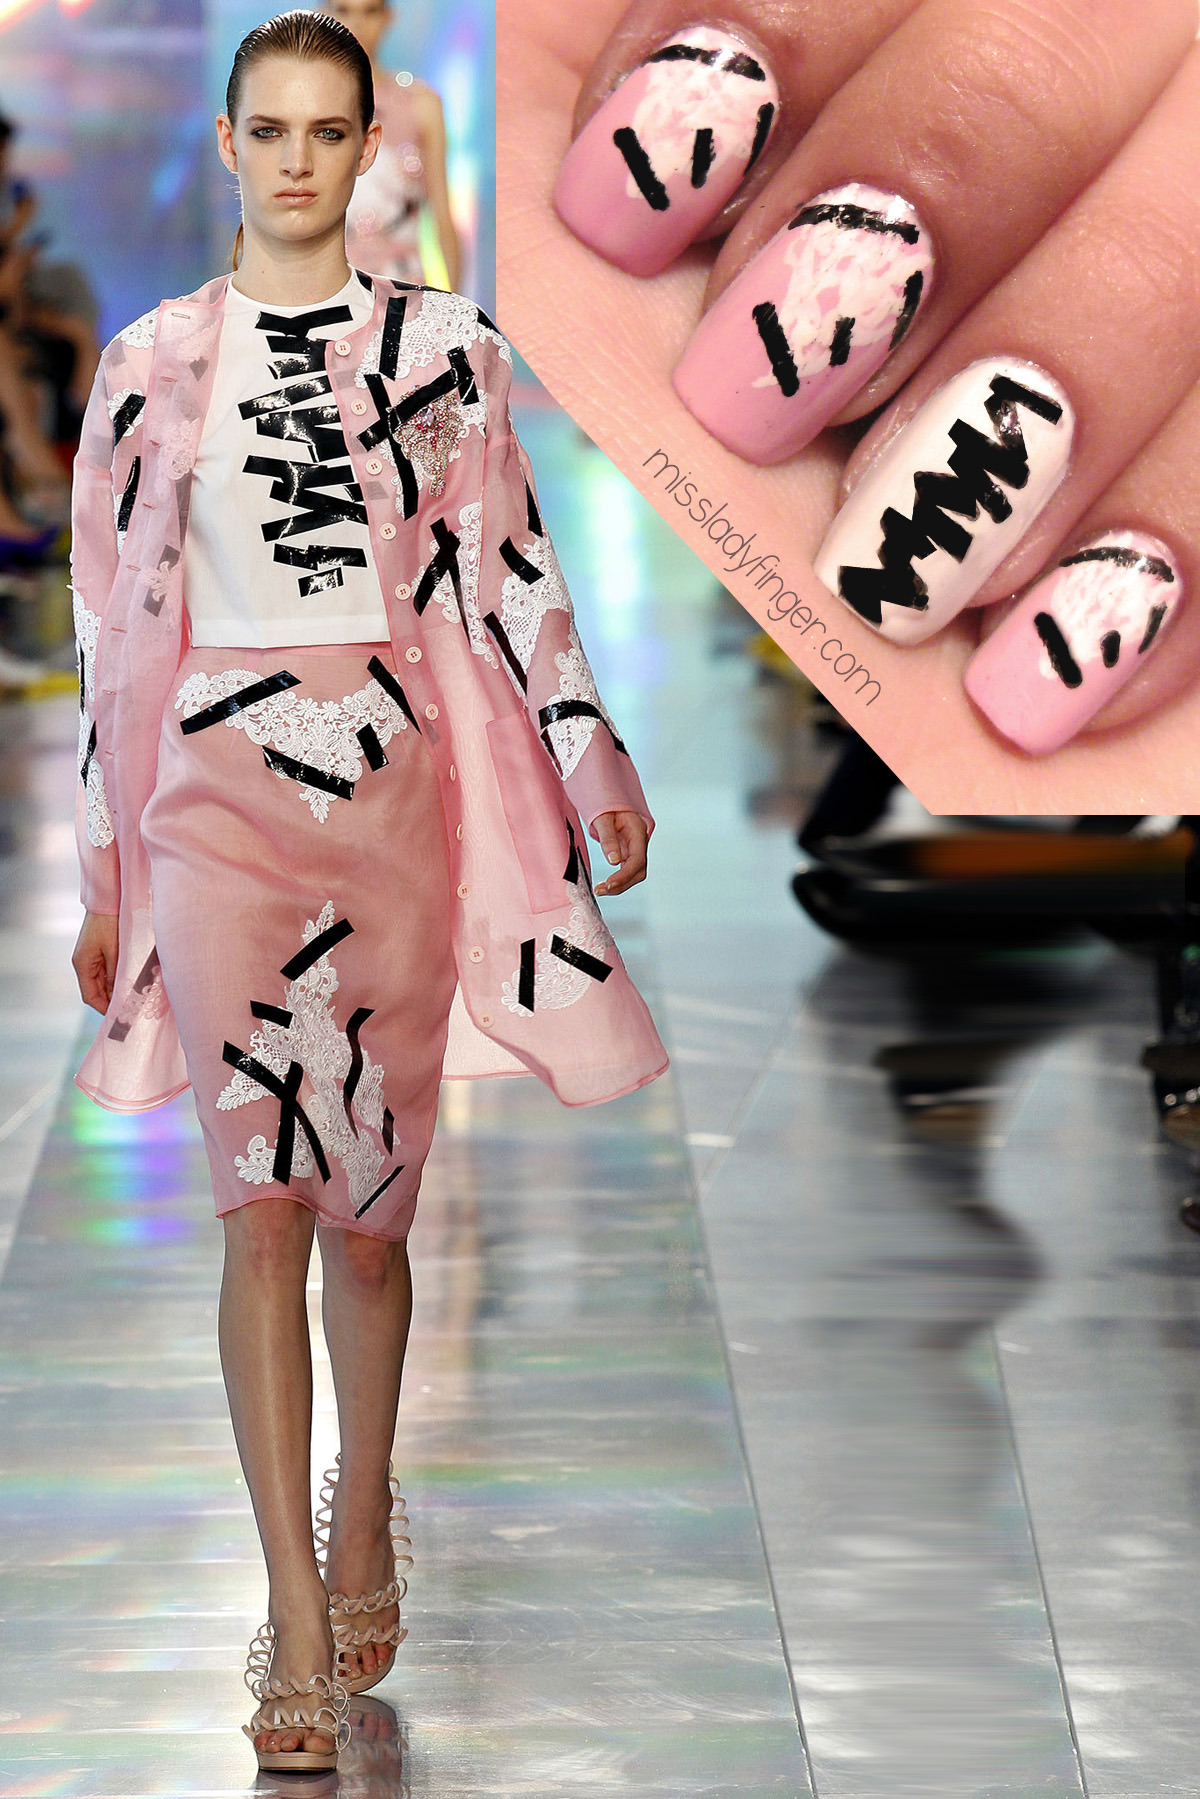 missladyfinger:MANICURE MUSE: Christopher Kane Spring '13Monster goth goes femme for Christopher Kane's quirky Spring '13 collection. Frankenstein gets the runway treatment quite literally as the source of inspiration. Offbeat details like rubbery bows and black electrical tape (pictured here) make ladylike looks an edge, but it's the Frankenstein screen tees that give the collection an electric jolt. I'm going to need one of those ASAP.Click here for nail colors and step-by-step instructions!